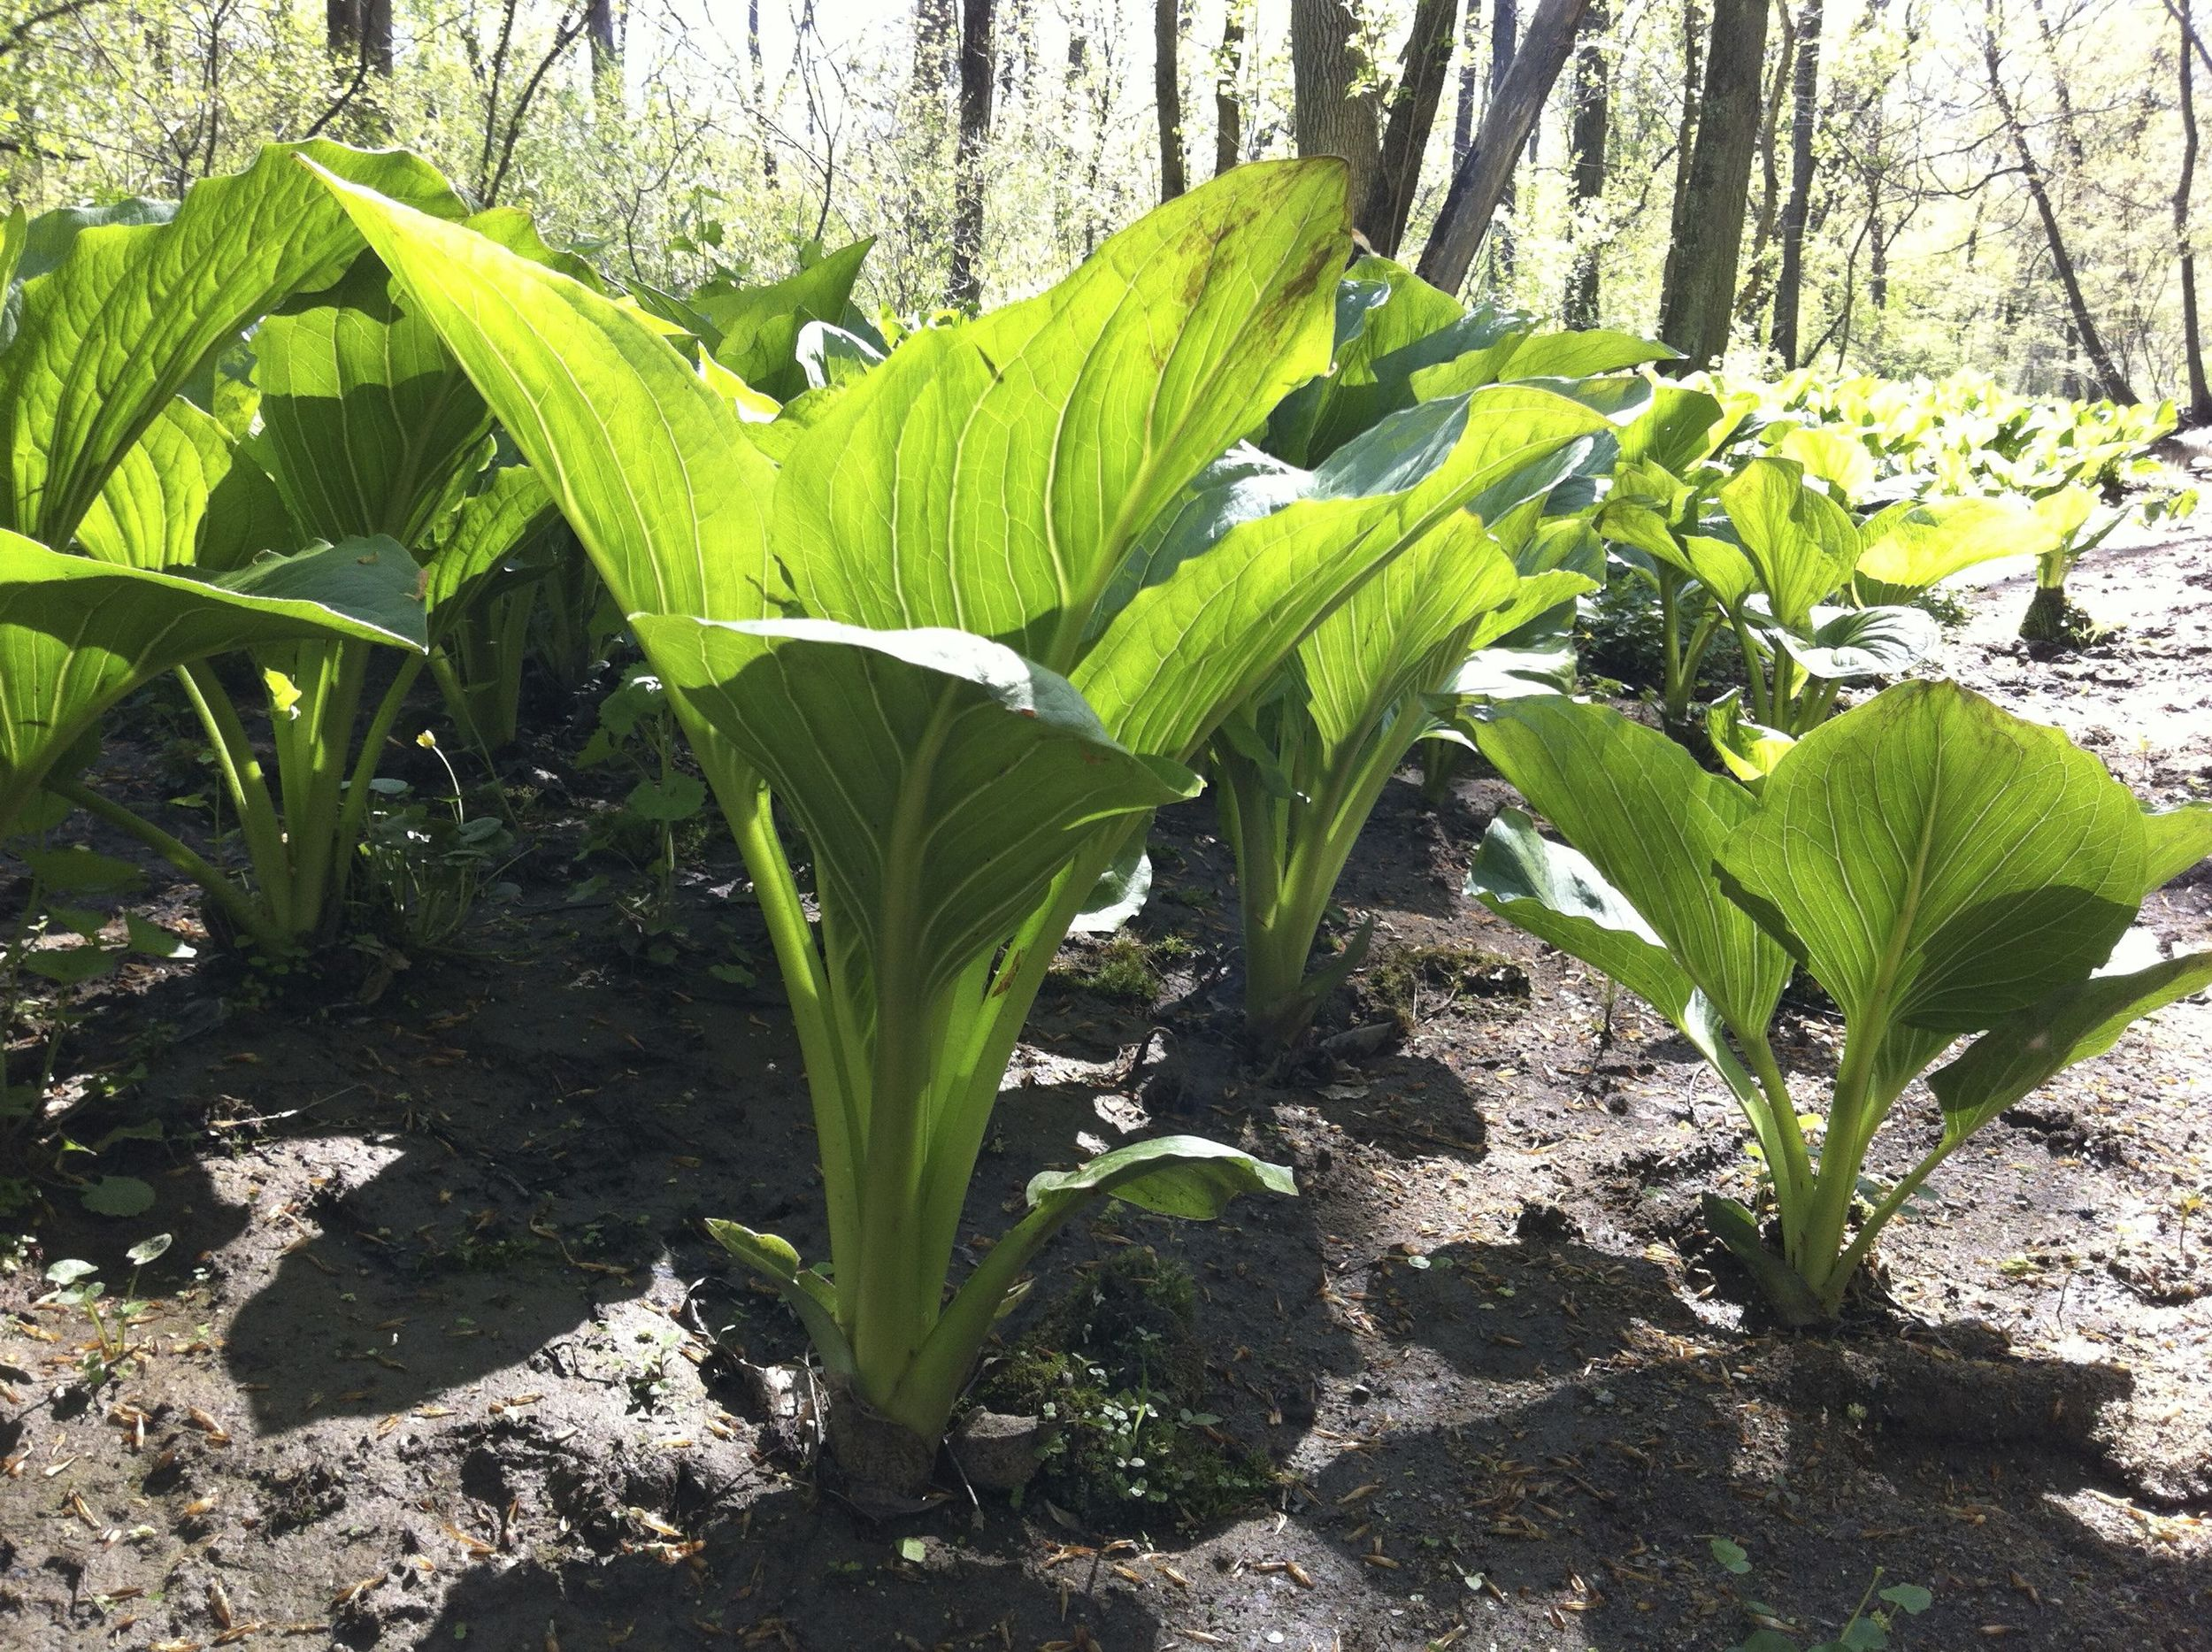 Skunk-cabbage